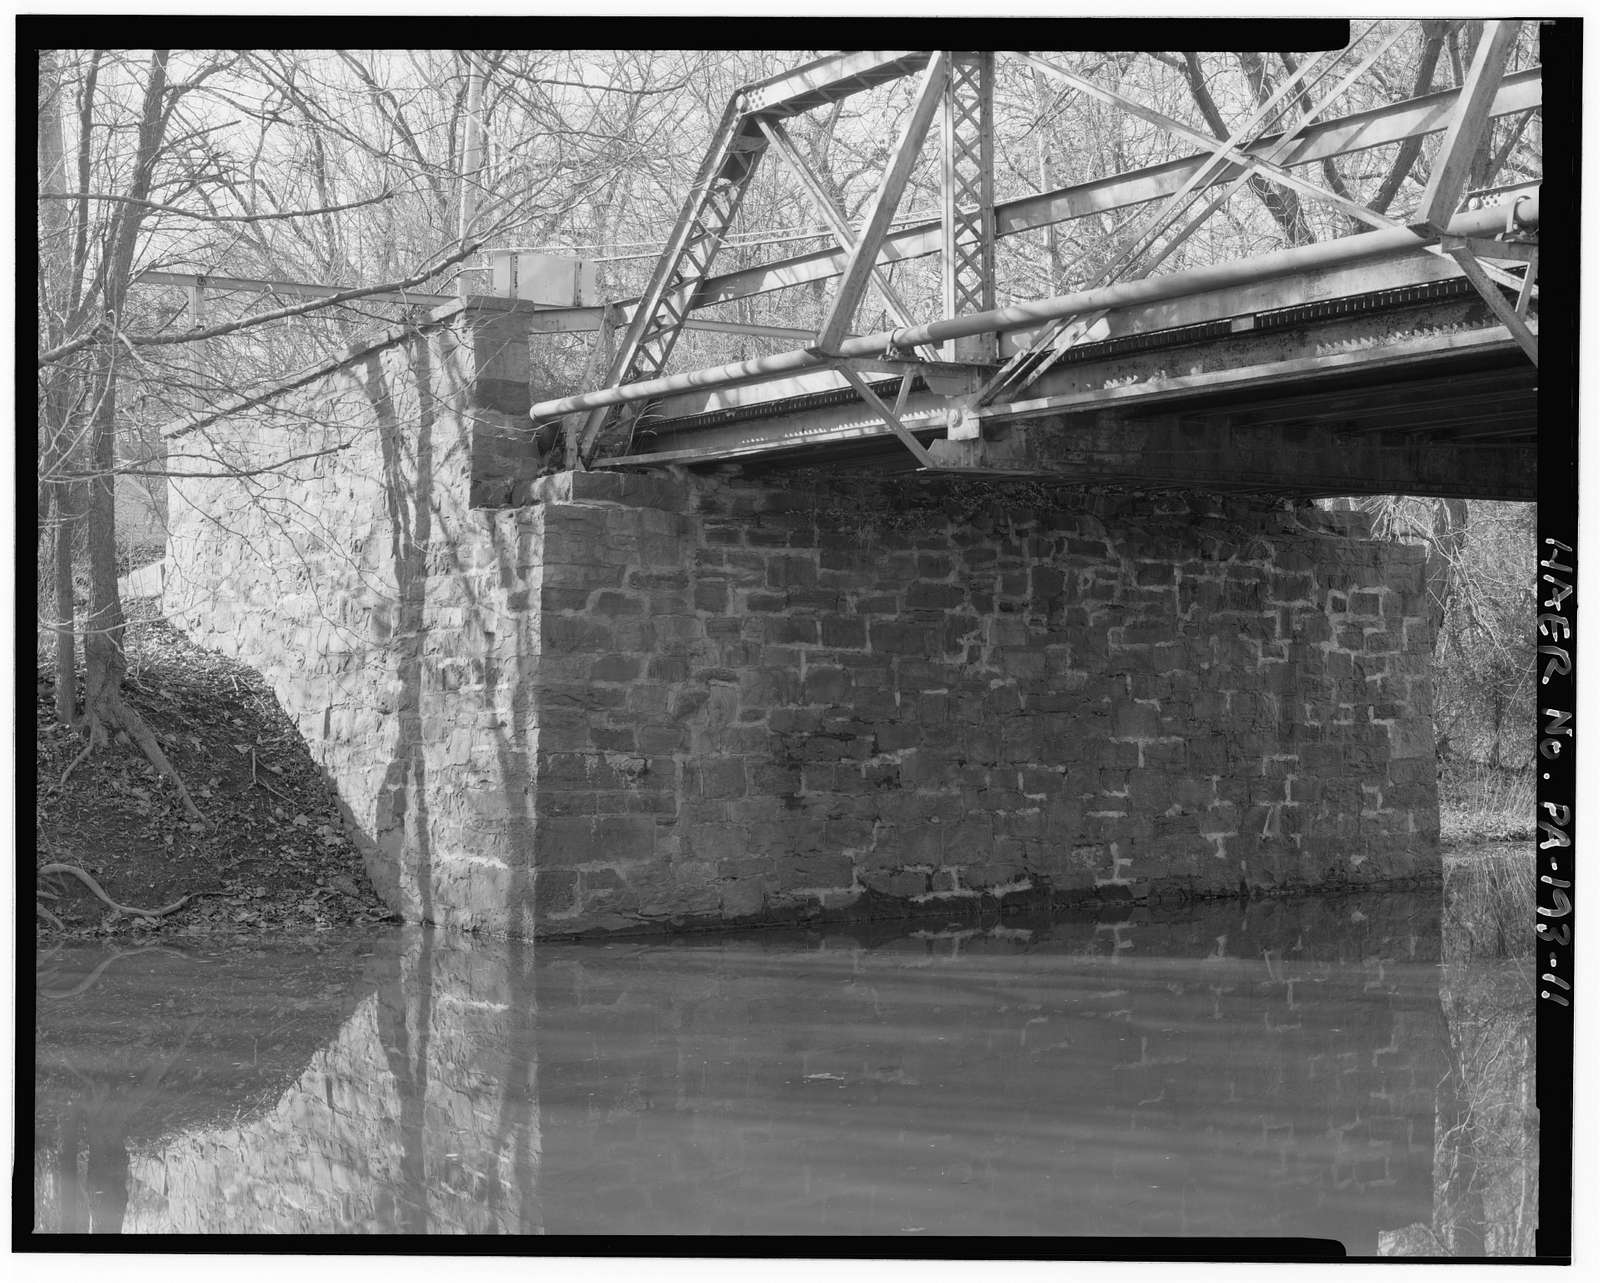 Bucks County Bridge No. 313, Spanning Delaware Canal at Letchworth Avenue, Yardley, Bucks County, PA